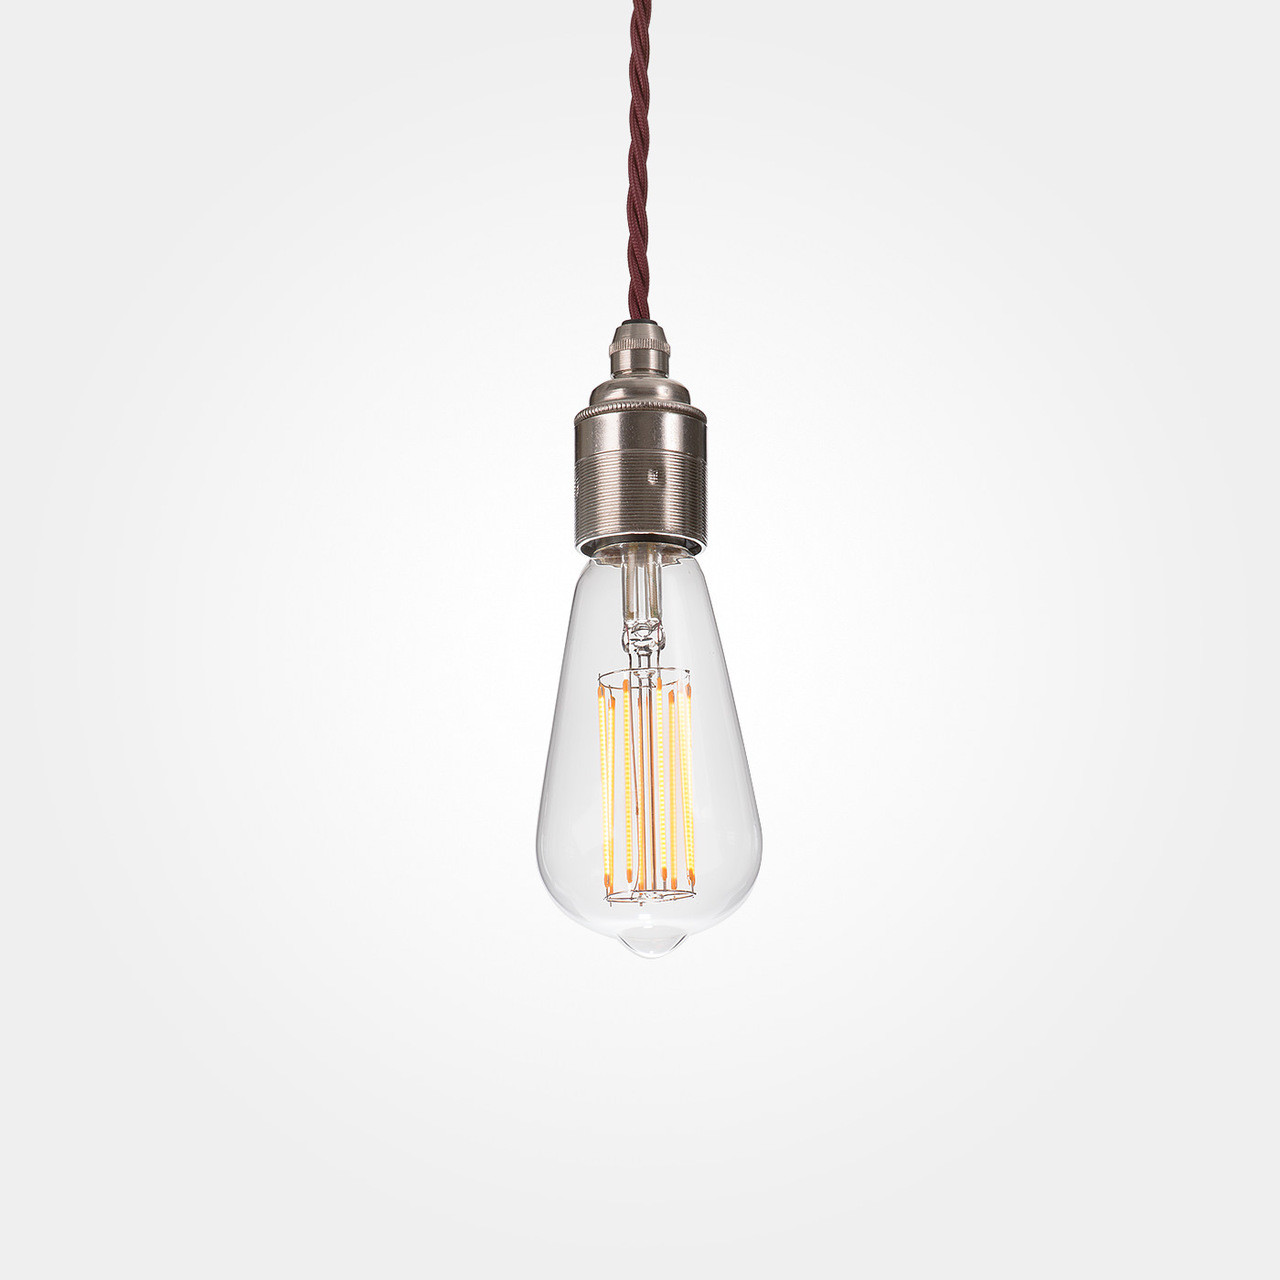 LED Classic Edison Pendant Light Artifact Lighting